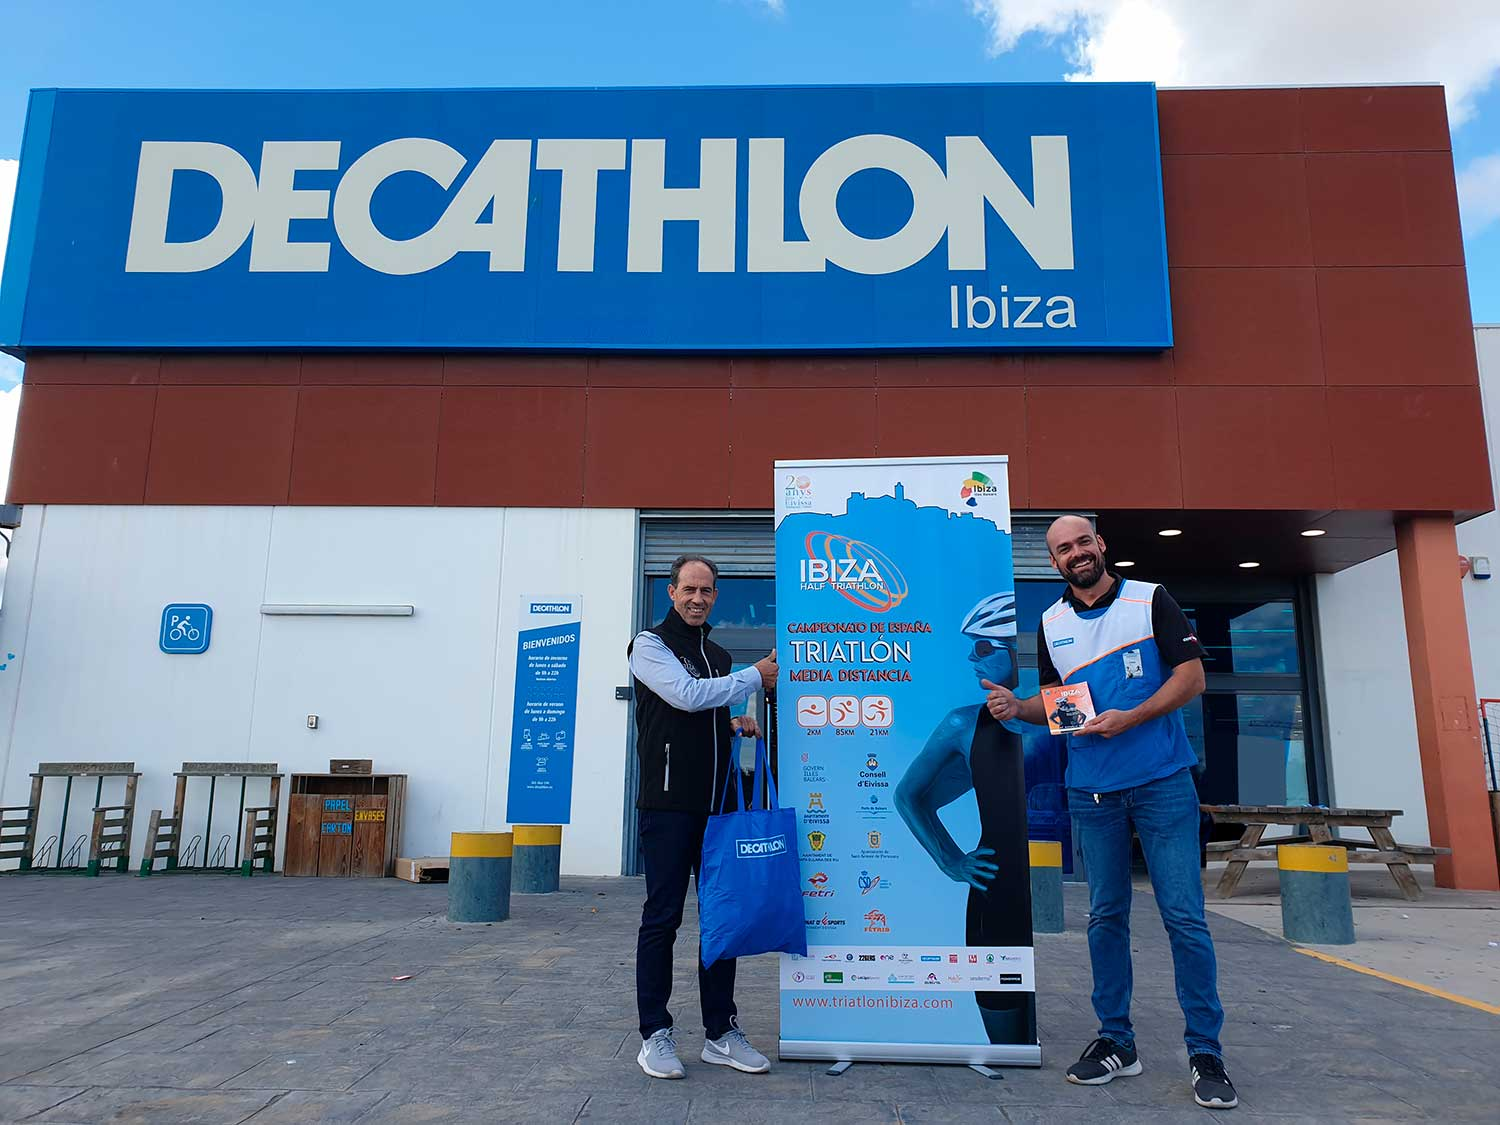 DECATHLON Con El Ibiza Half Triathlon